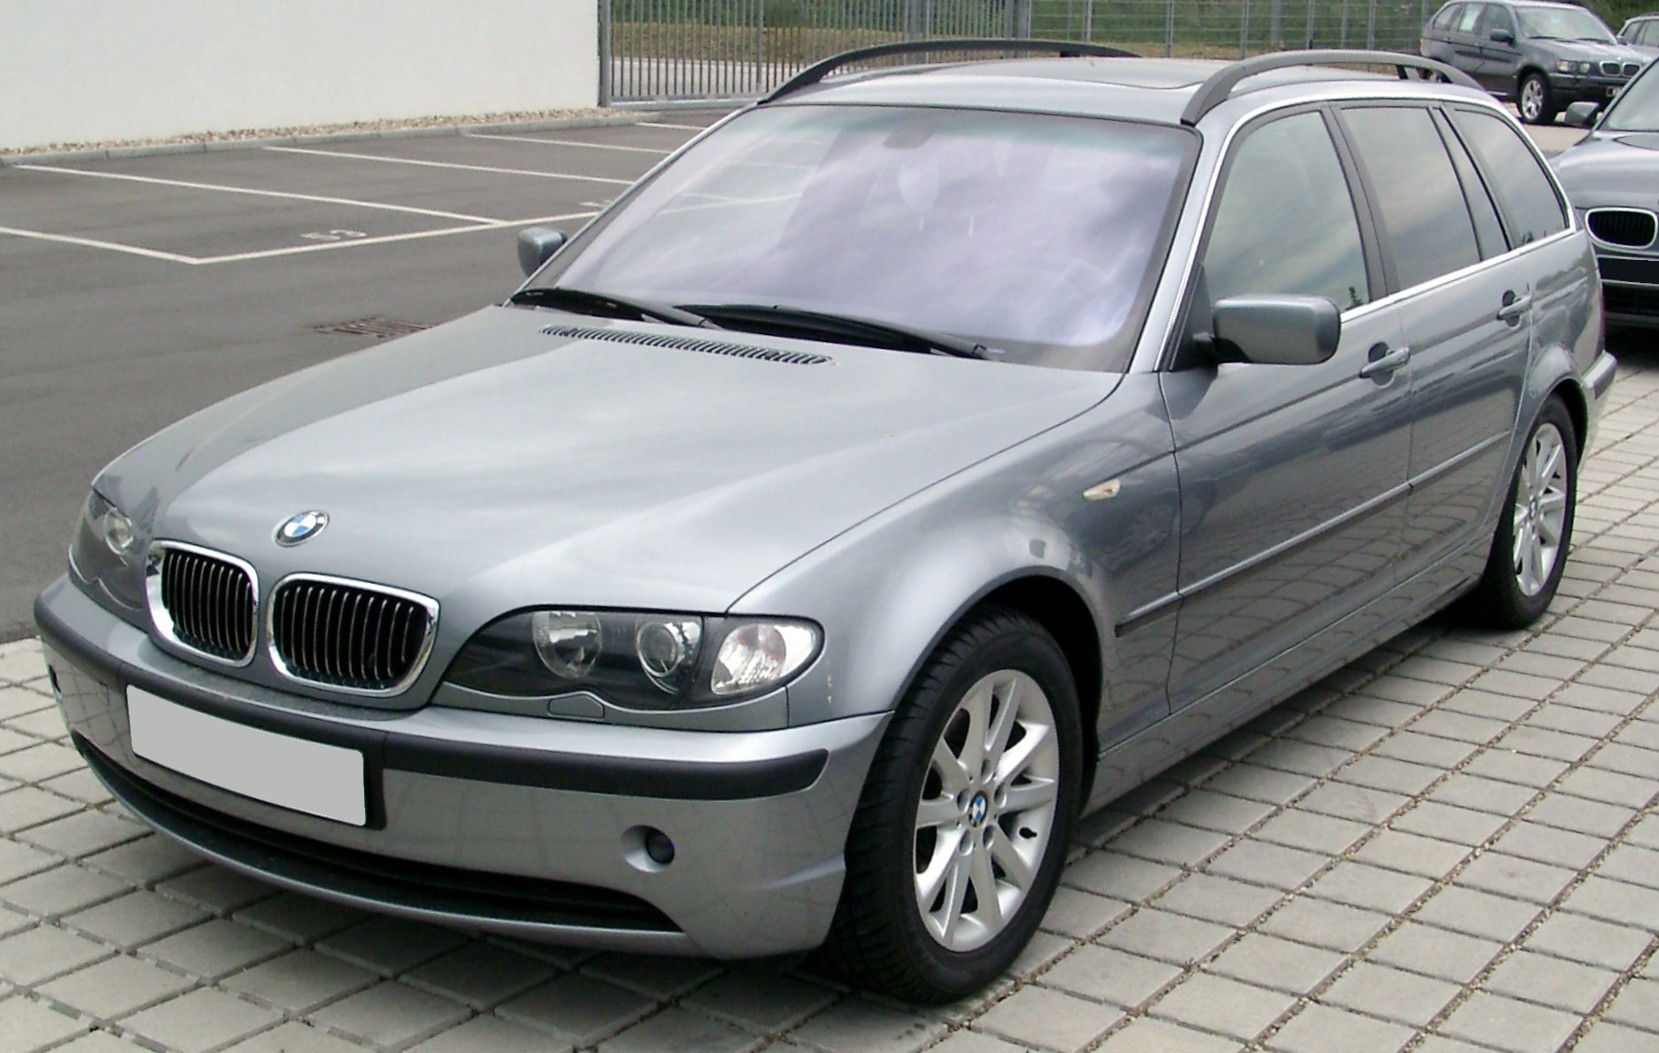 file bmw e46 touring front wikimedia commons. Black Bedroom Furniture Sets. Home Design Ideas